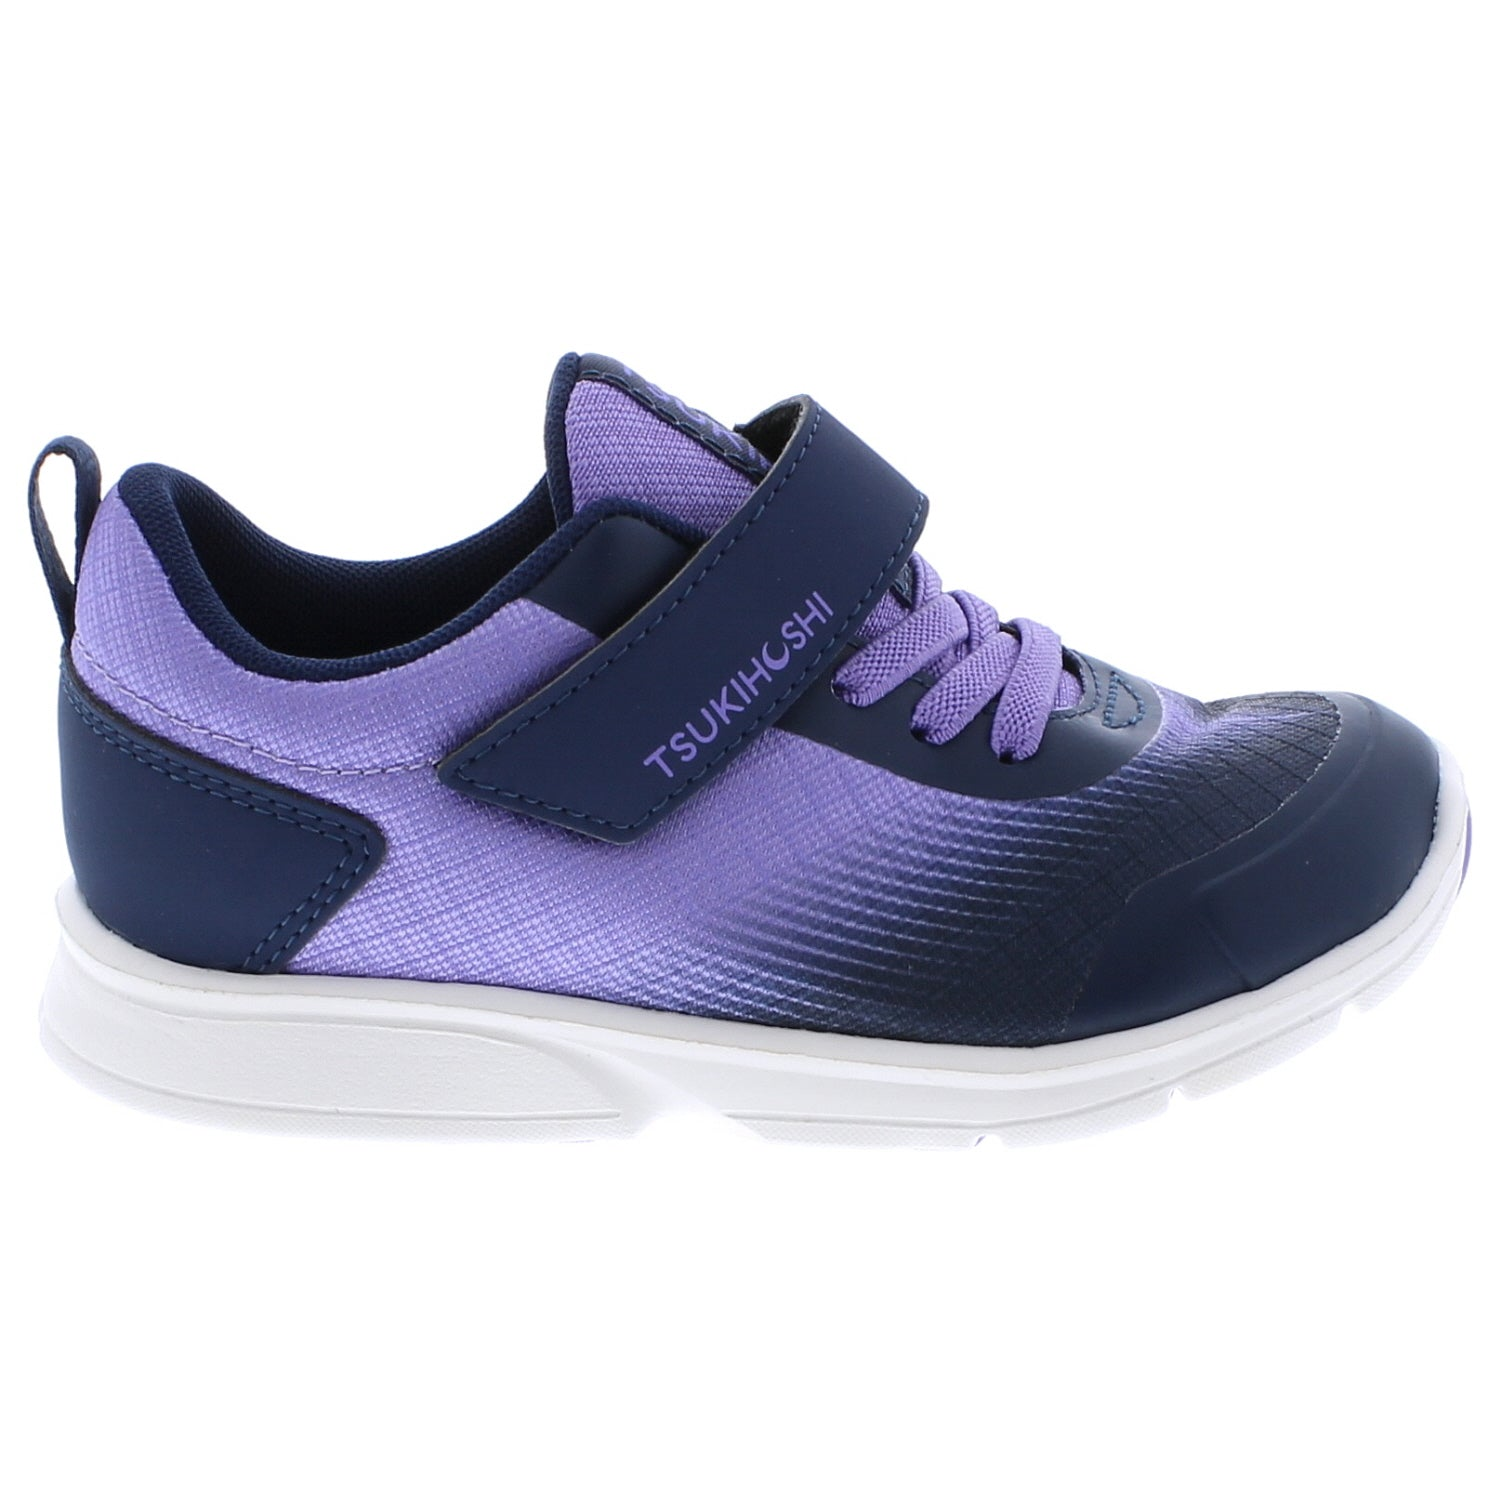 Turbo - Purple / Navy